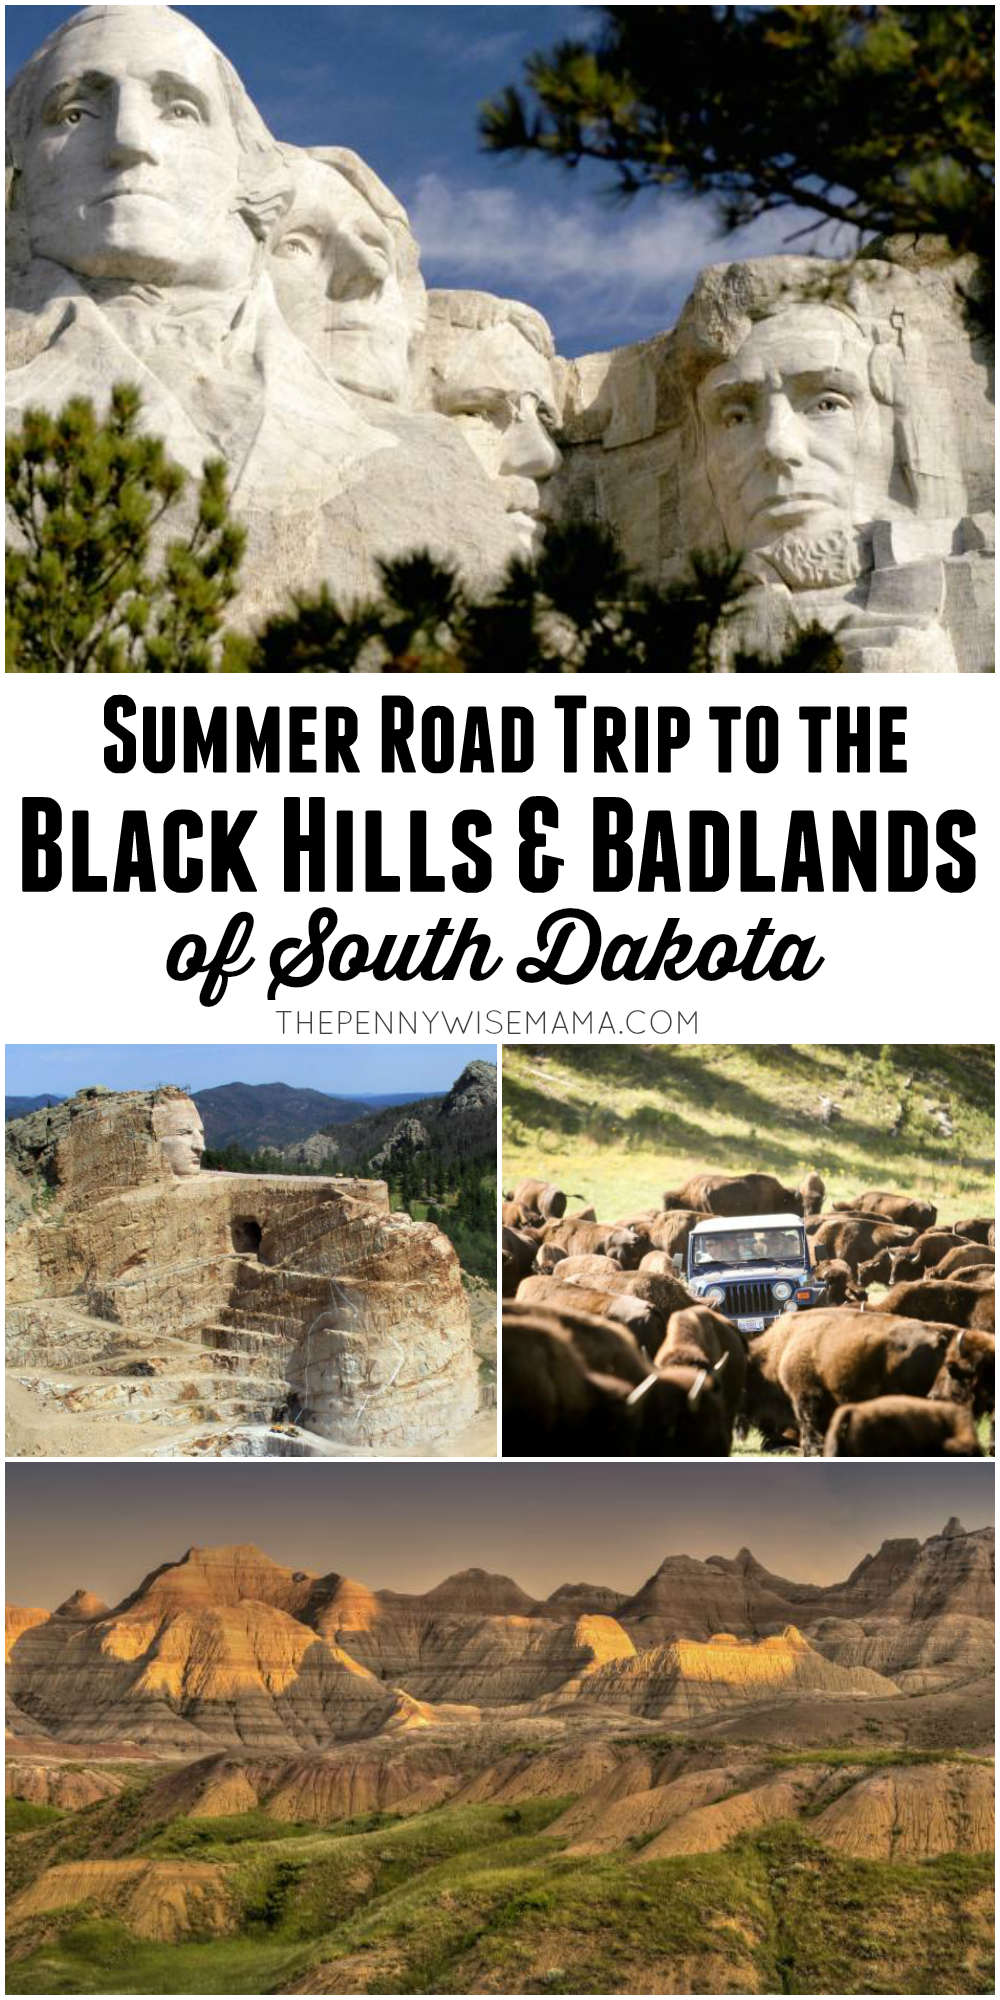 Summer Road Trip to the Black Hills & Badlands of South Dakota